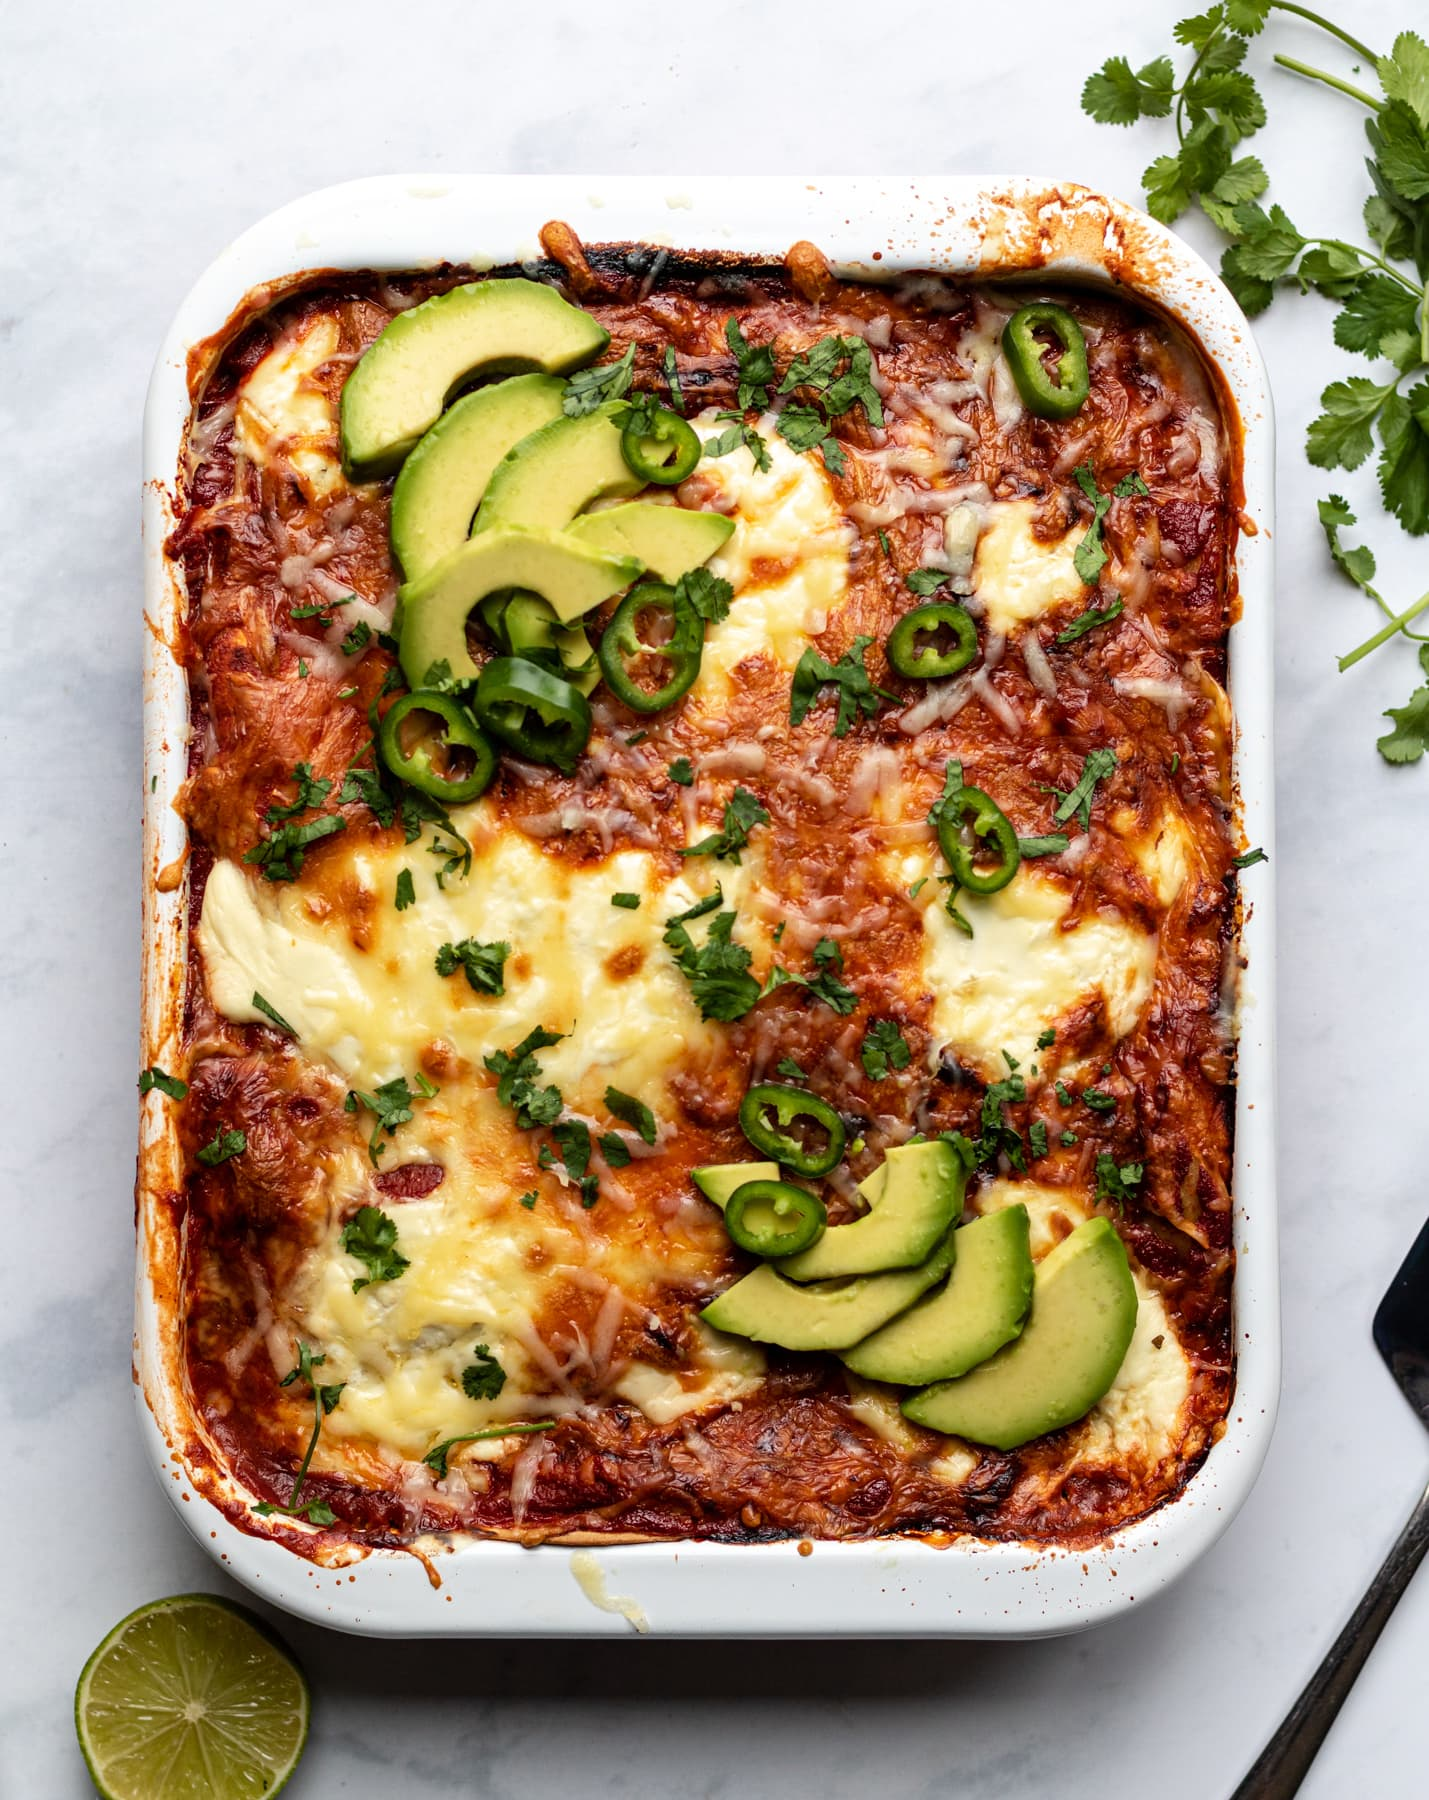 vegetarian enchilada casserole with black beans and spinach